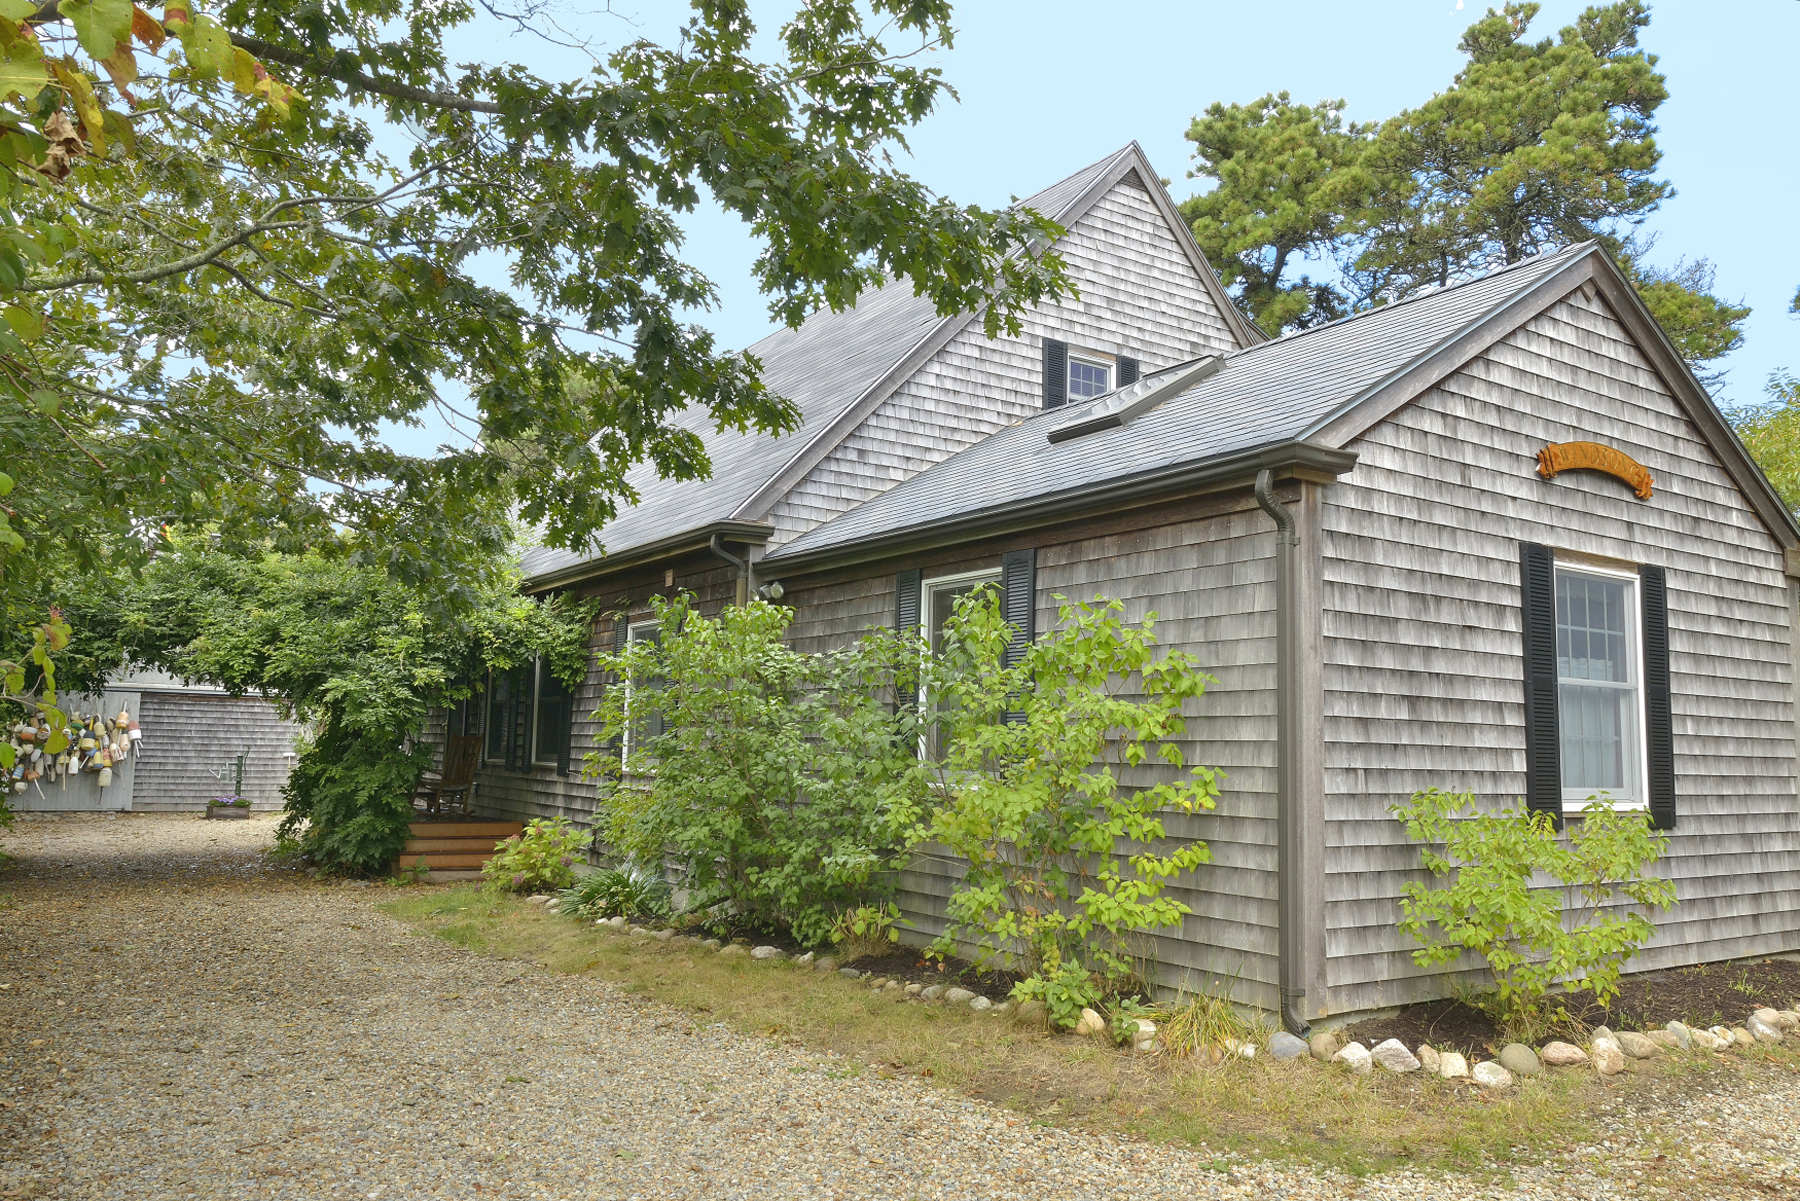 Single Family Home for Sale at Private Yet Centrally Located. 47 Fairgrounds Road Nantucket, Massachusetts 02554 United States